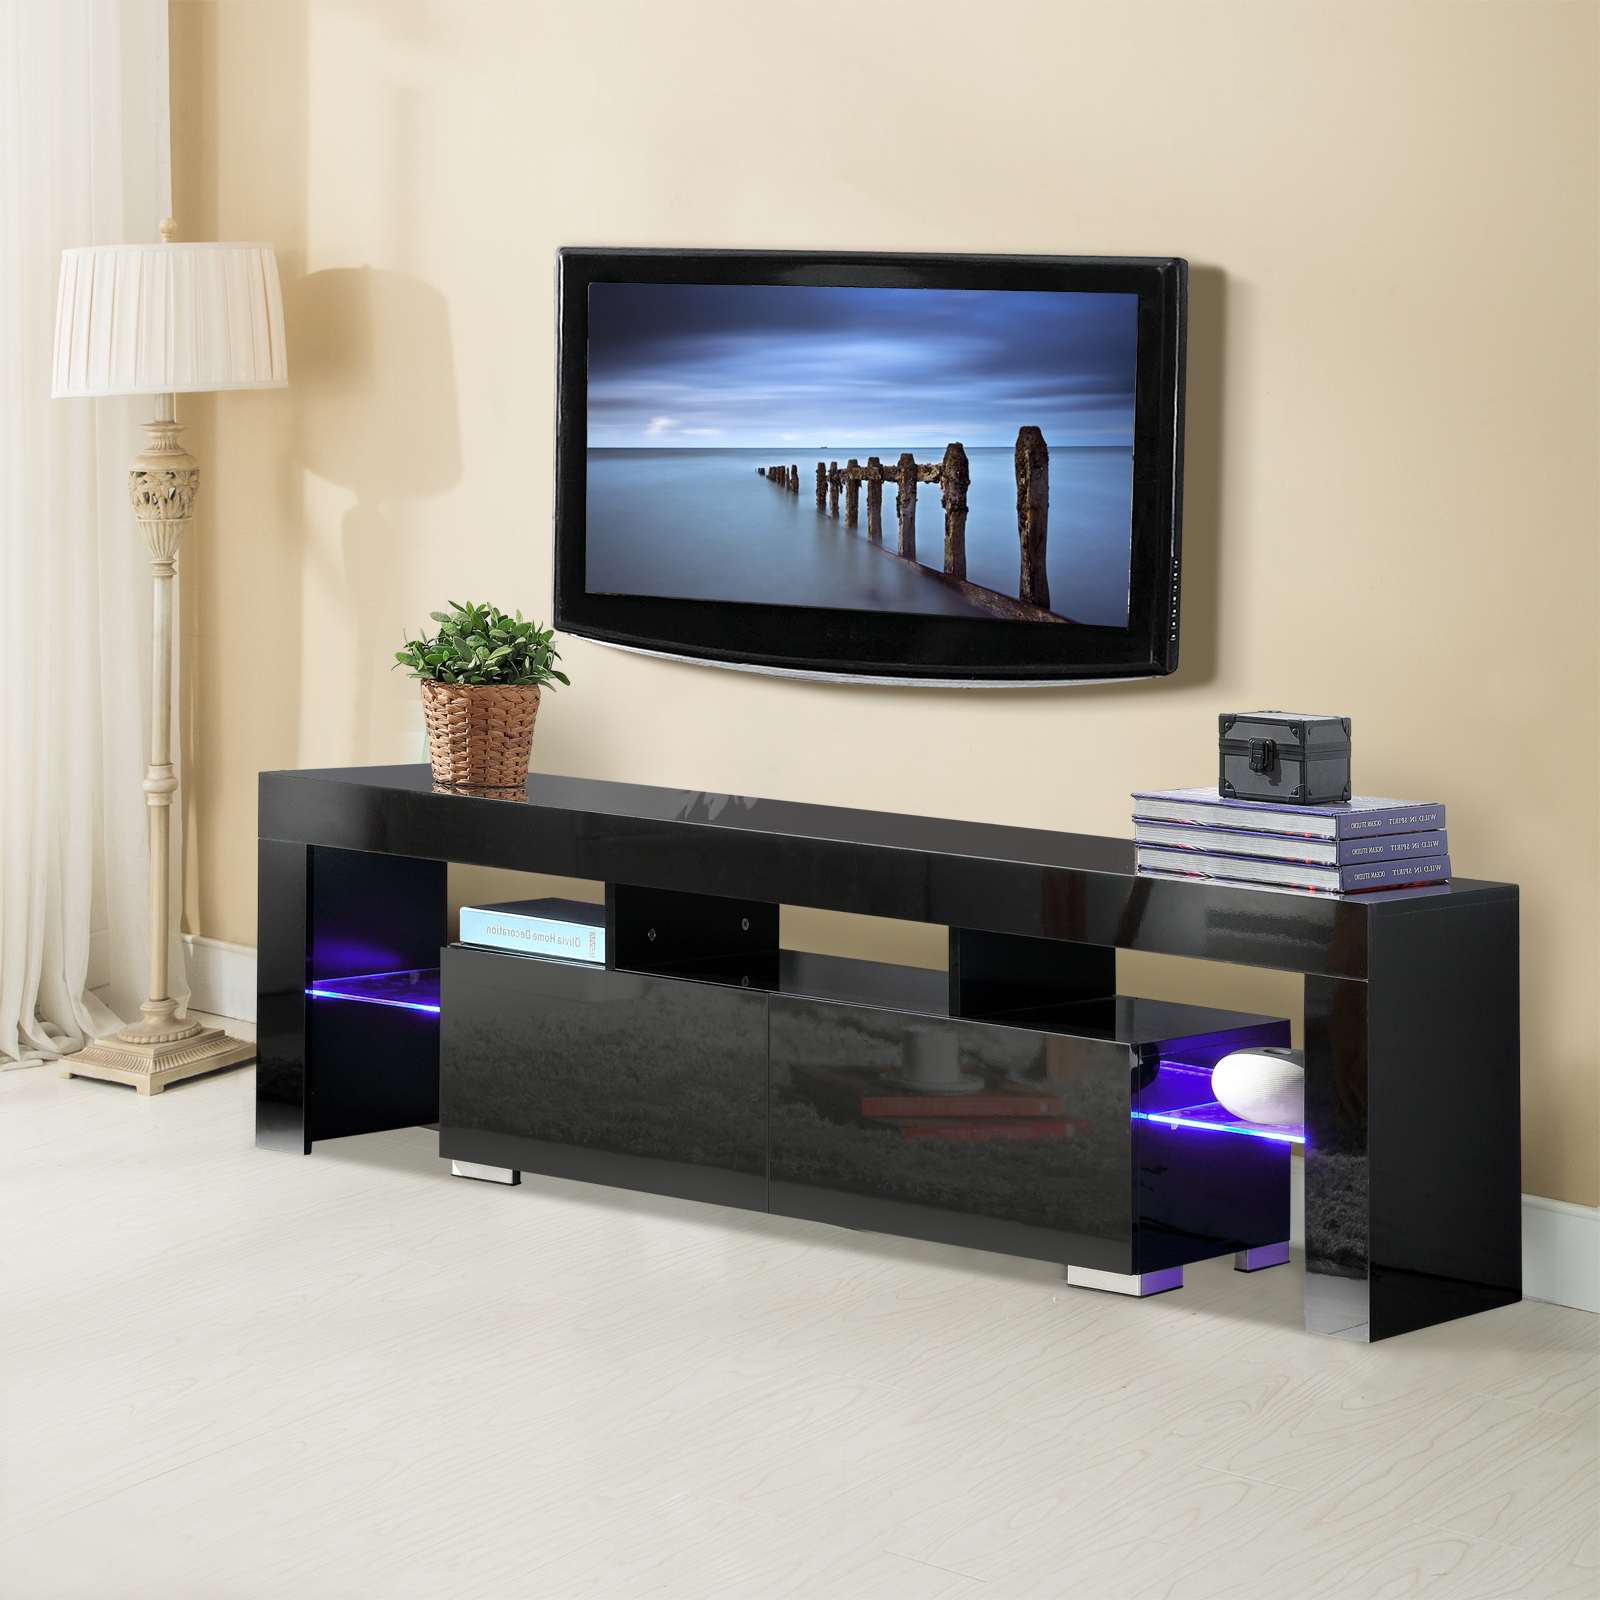 Kai 63 Inch Tv Stands Regarding Most Recent Mecor Tv Stand With Led Lights, 63 Inch High Gloss Tv Shelves (Gallery 8 of 20)